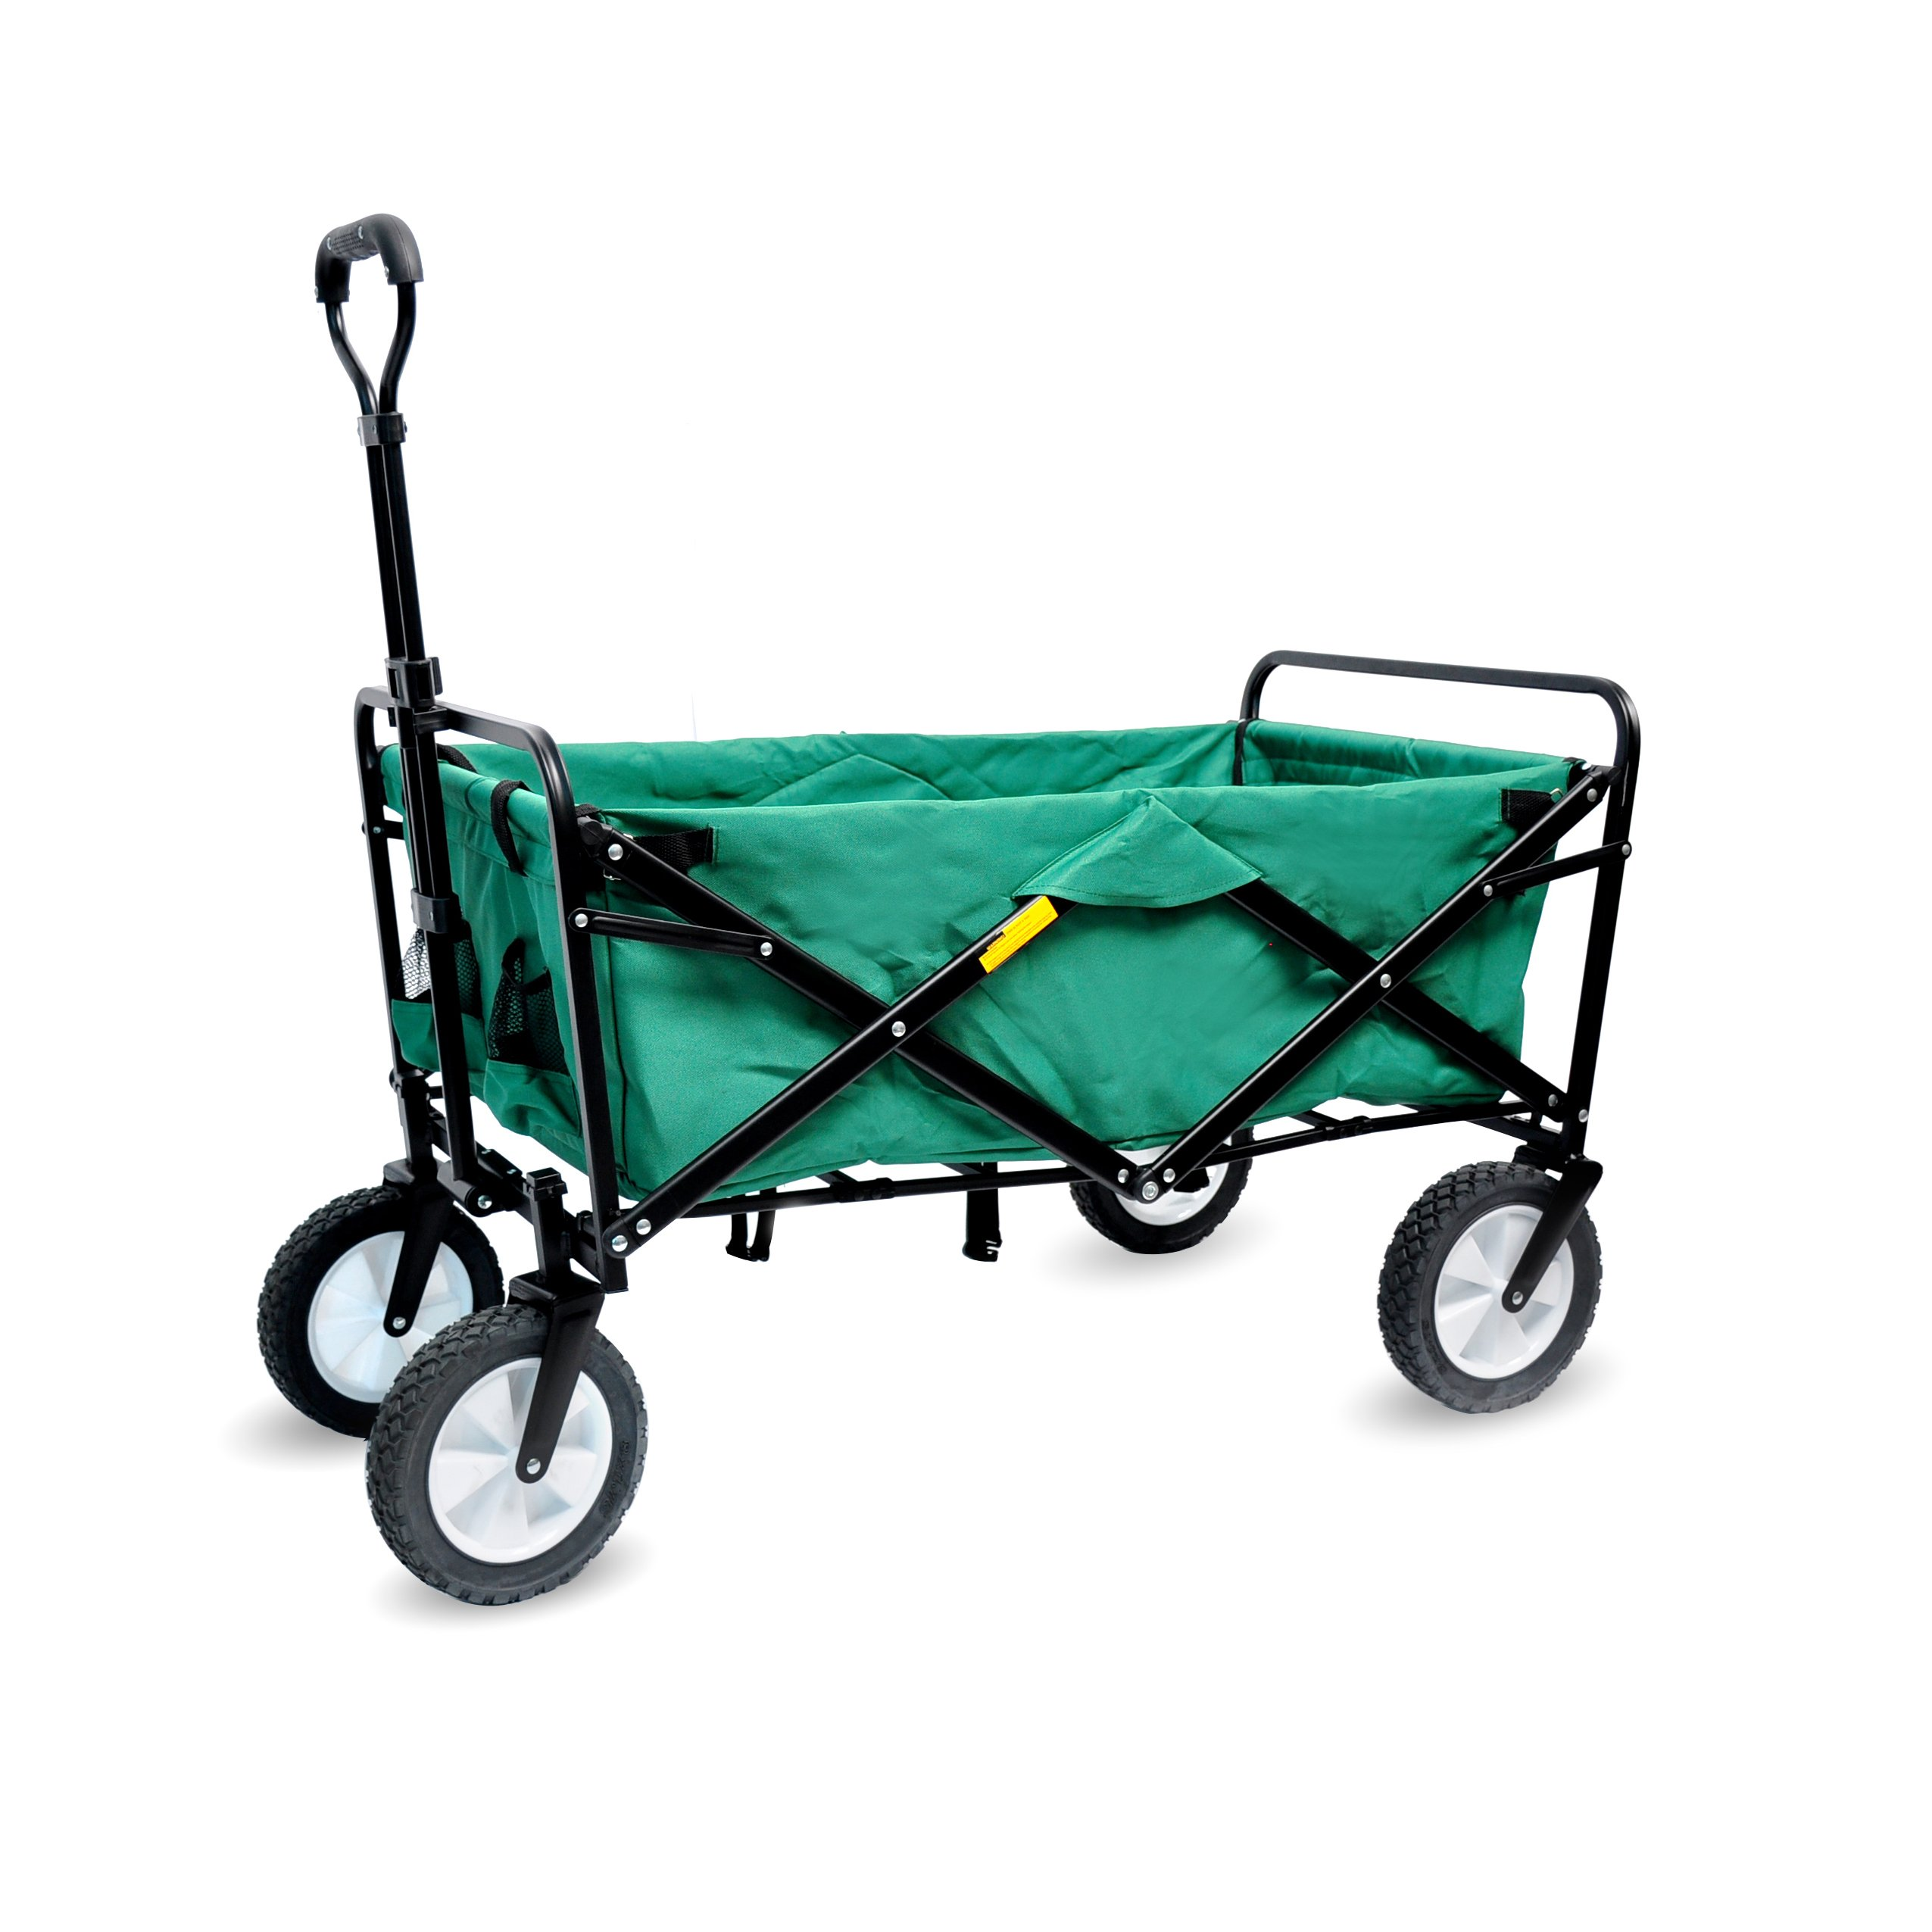 WHITSUNDAY Collapsible Folding Garden Outdoor Park Utility 30'' Picnic Wagon 1 Year Warranty (Amazon Green) by WHITSUNDAY